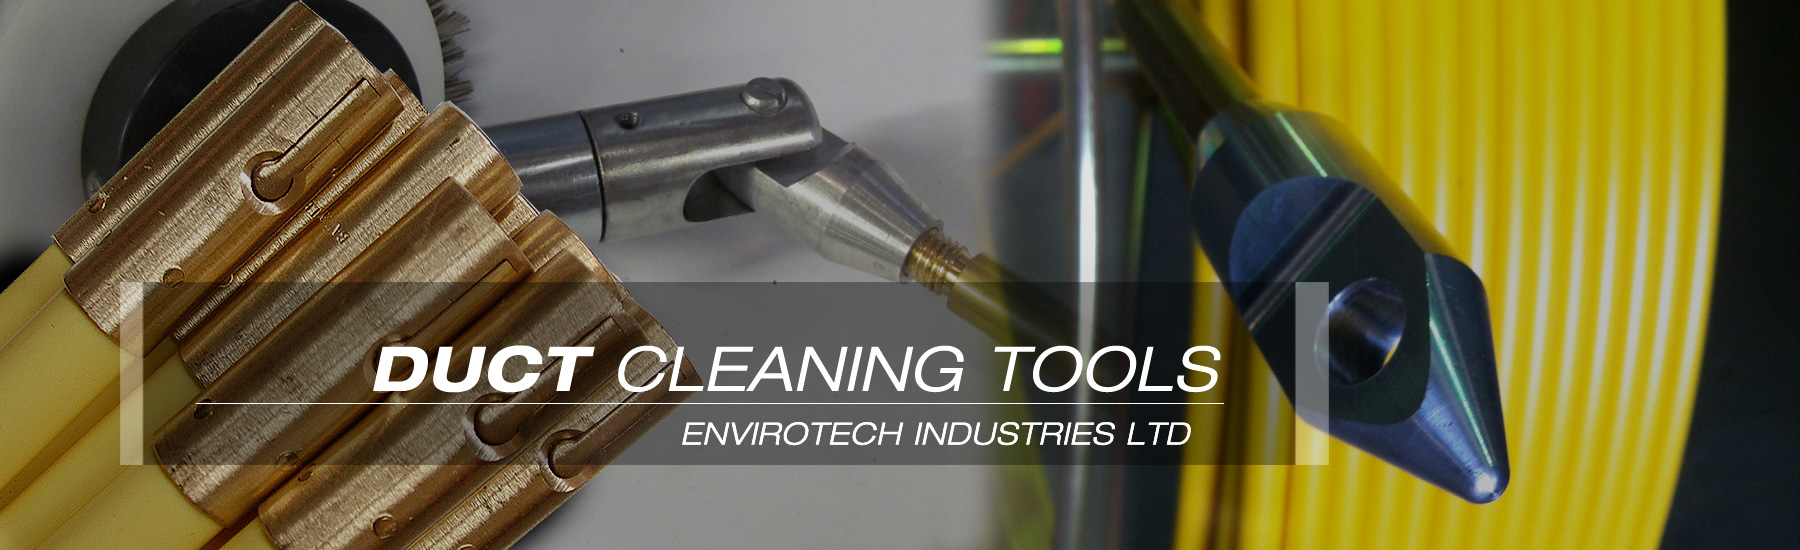 Duct_Cleaning_Tools